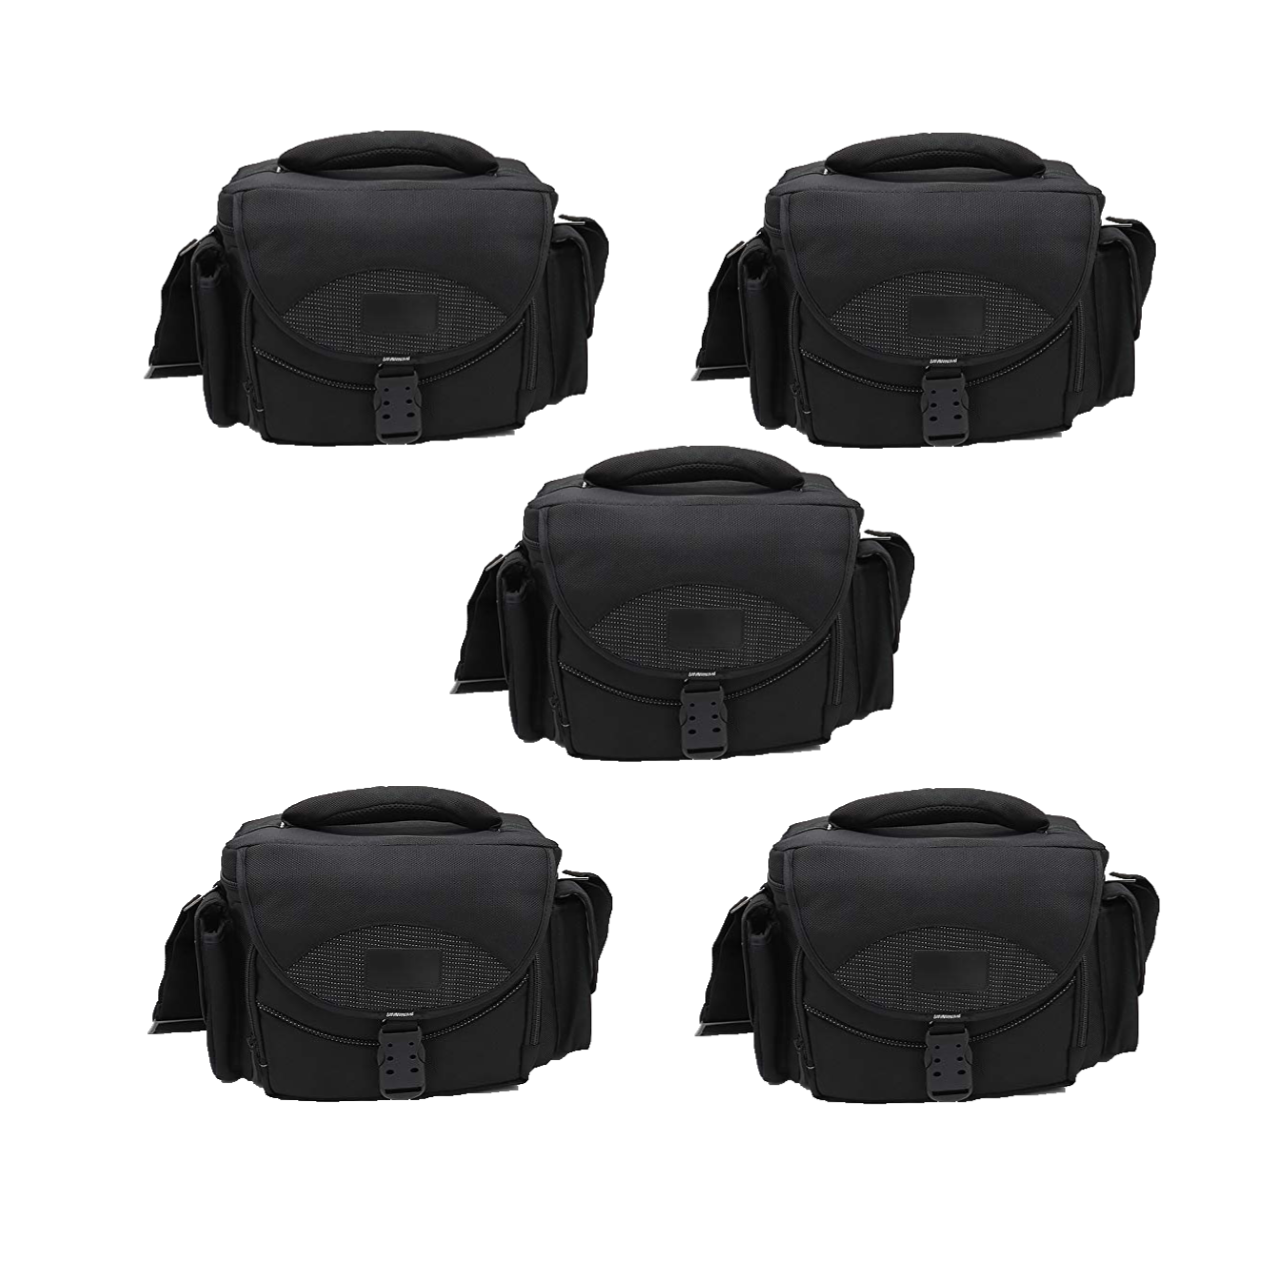 Solibag Shoulder Case -3000 Large Dslr Gadget Bag (Gray Interior) Pack Of 5Pcs Camera Bags Camera Bags